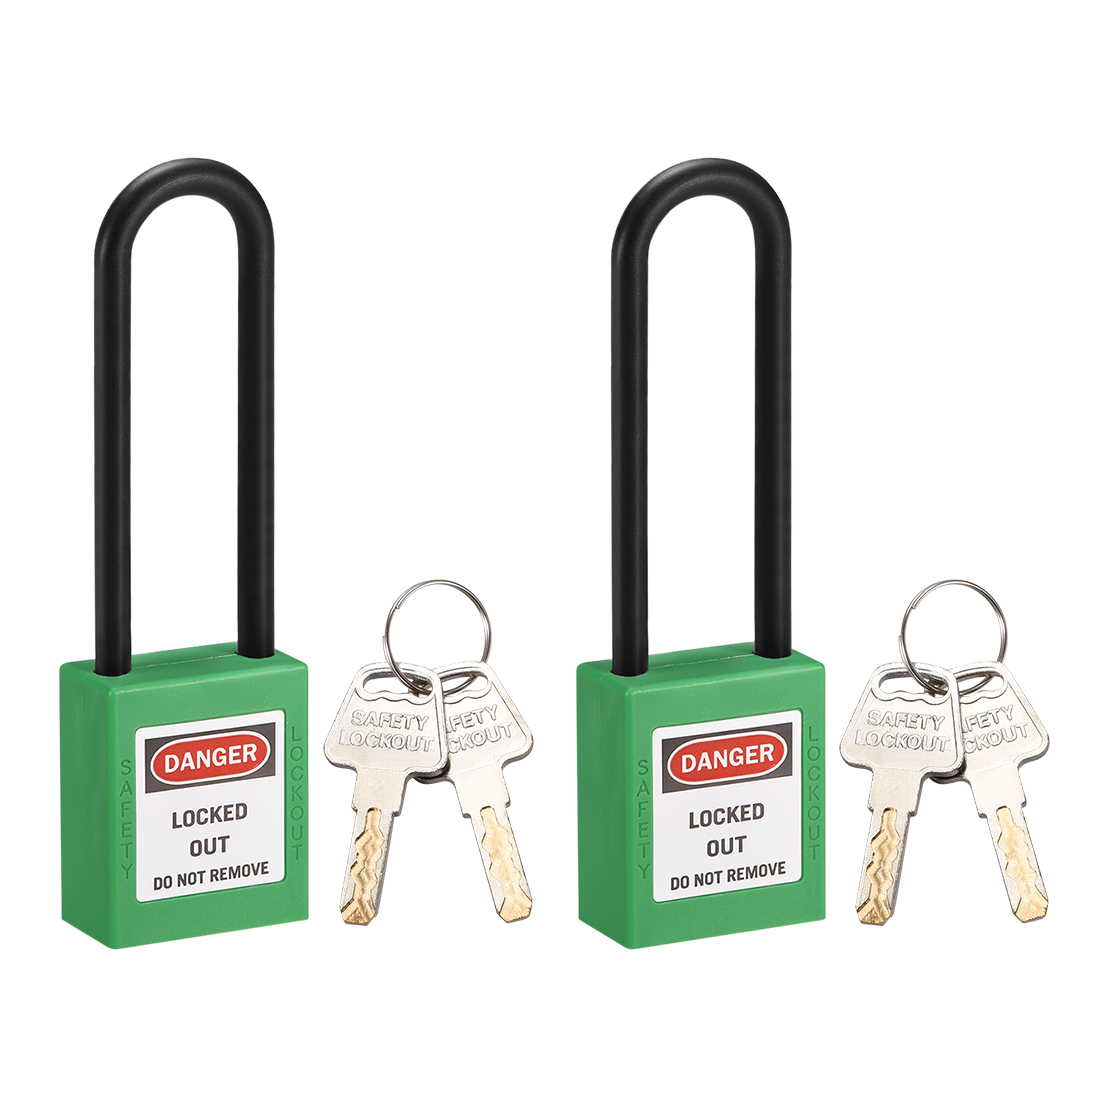 Lockout Tagout Locks 3 Inch Shackle Key Different Safety Padlock Plastic 2pcs